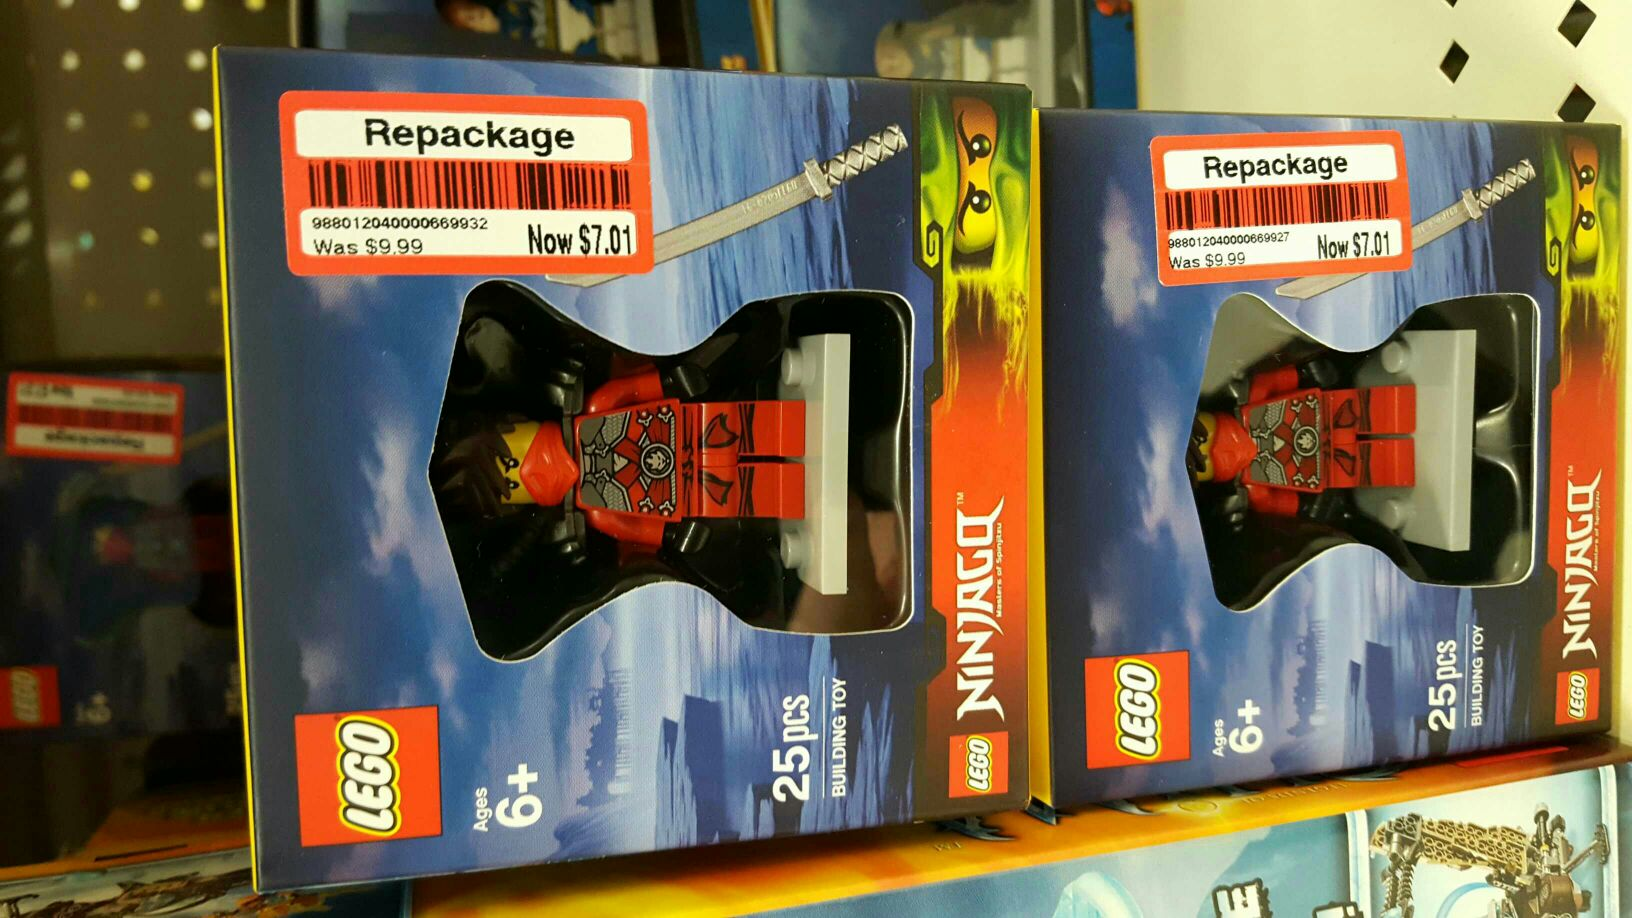 Toy Guitar Target Meaning Of Target Stickers On Packages Target Store Online